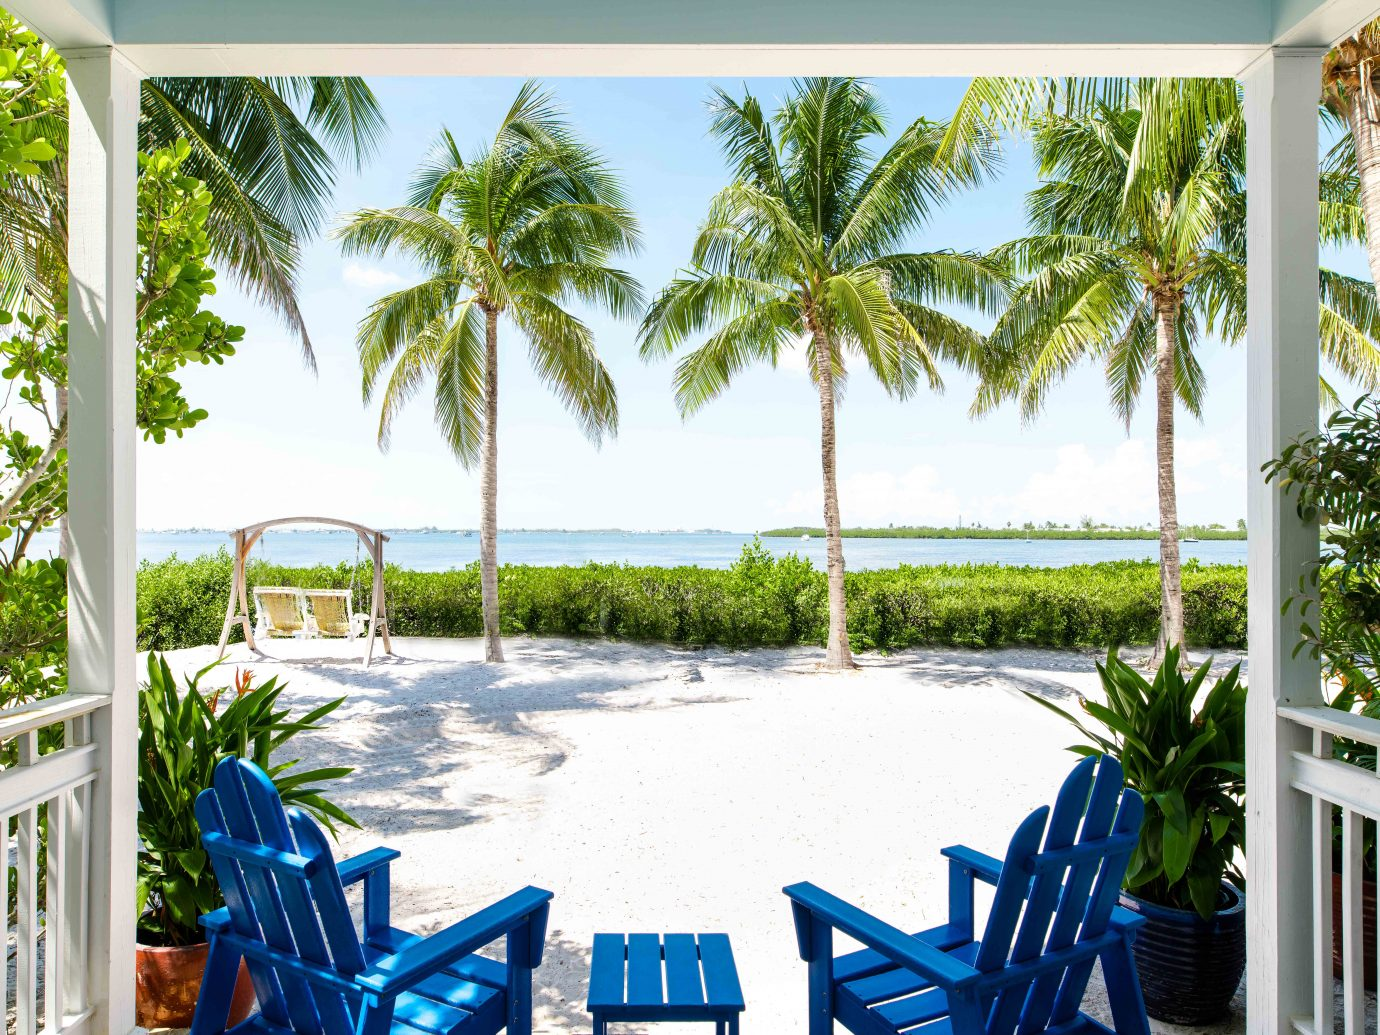 View of beach from room at Parrot Key